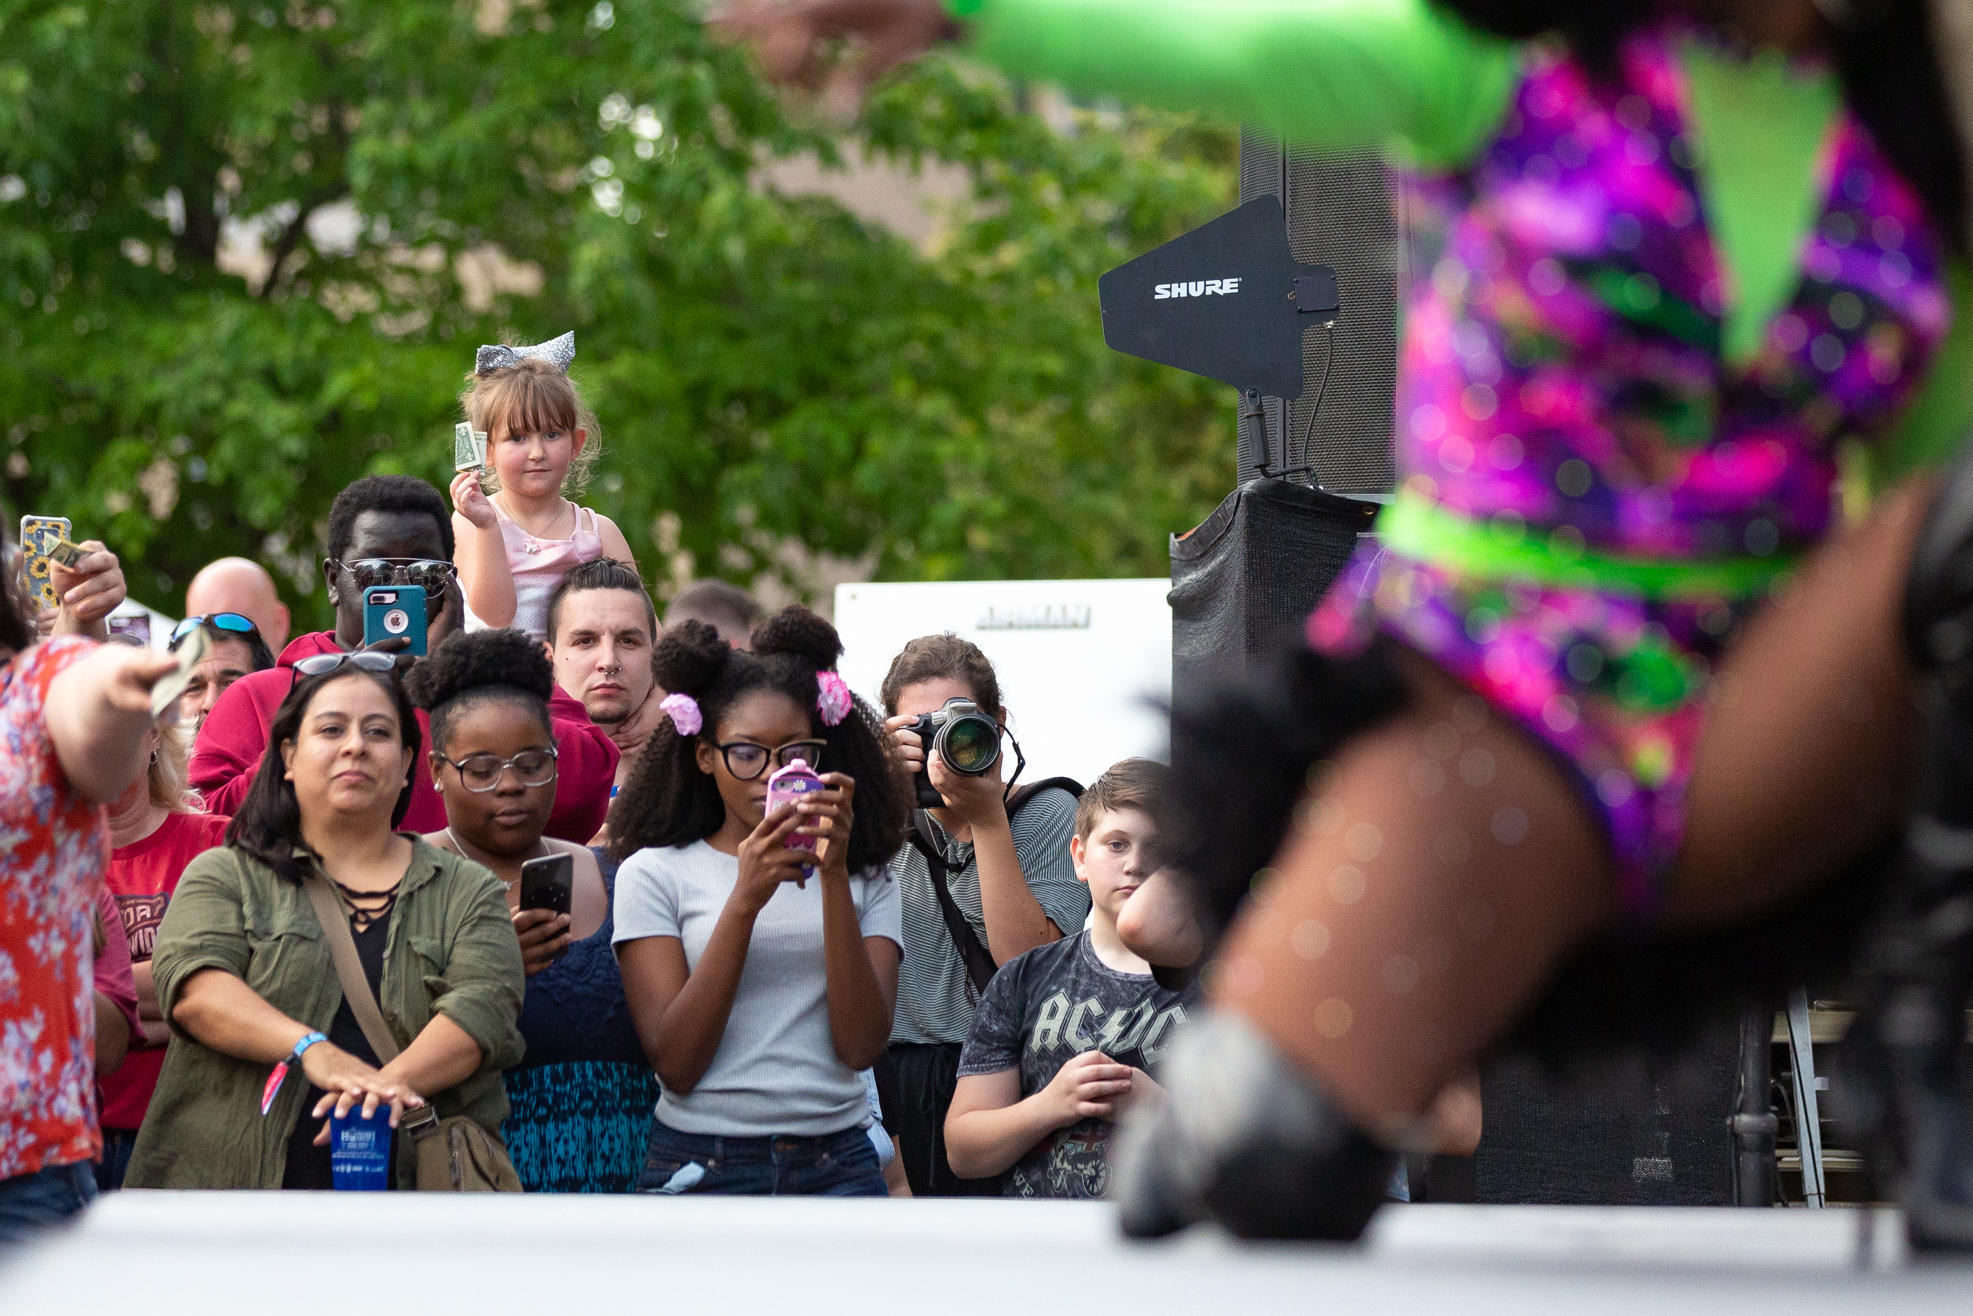 Festival goers watch a drag queen performance during the Downtown Block Party in Iowa City on Saturday, June 22, 2019.